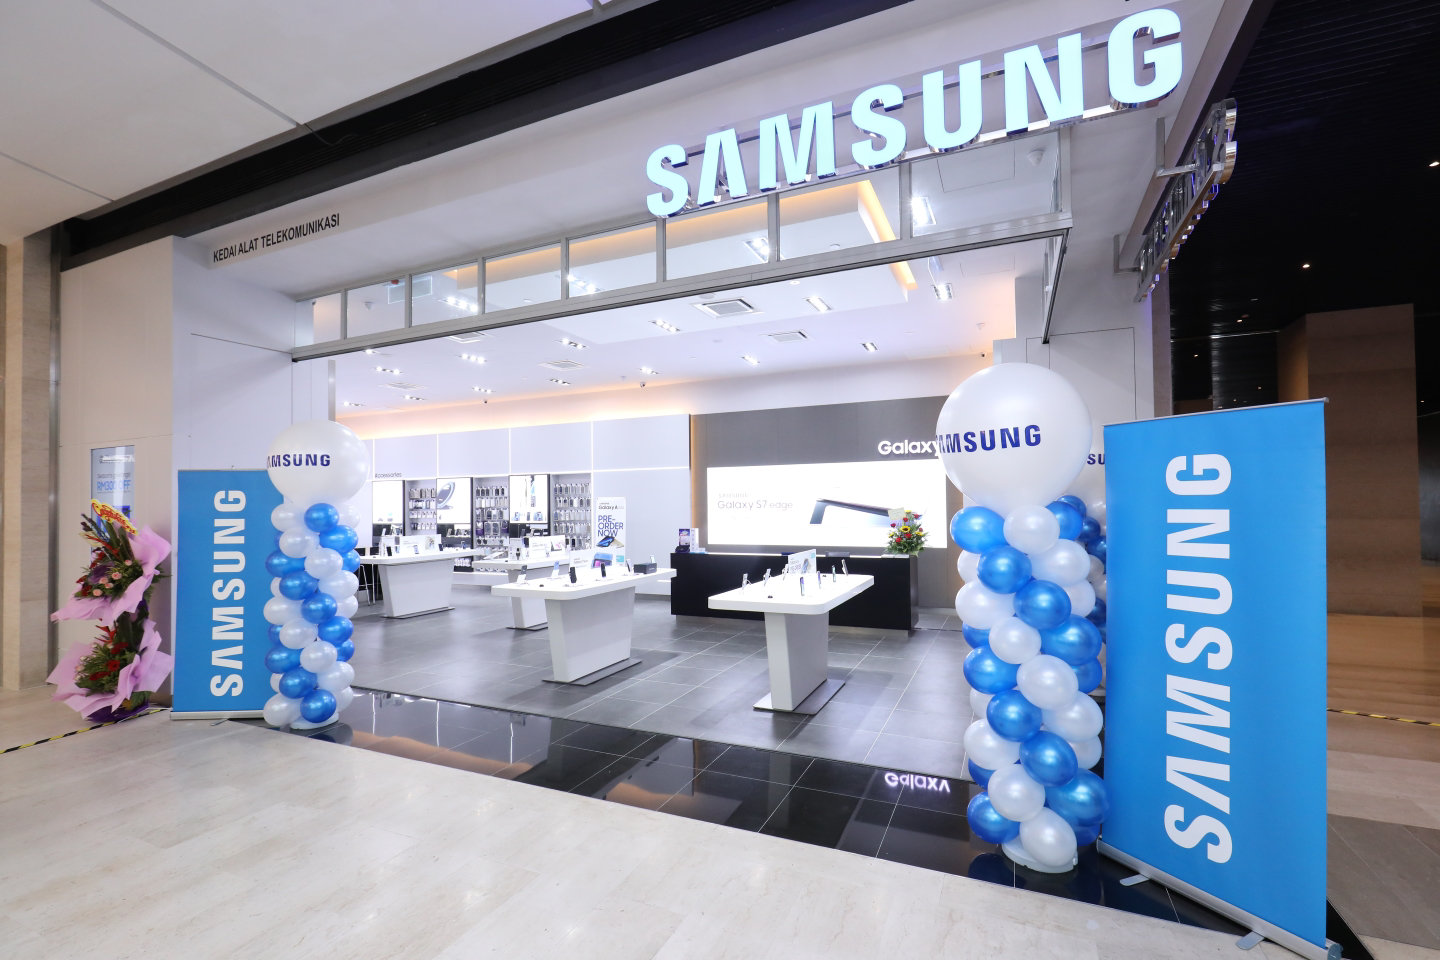 Samsung Opens First Ever Experience Store in Genting  Samsung Newsroom Malaysia